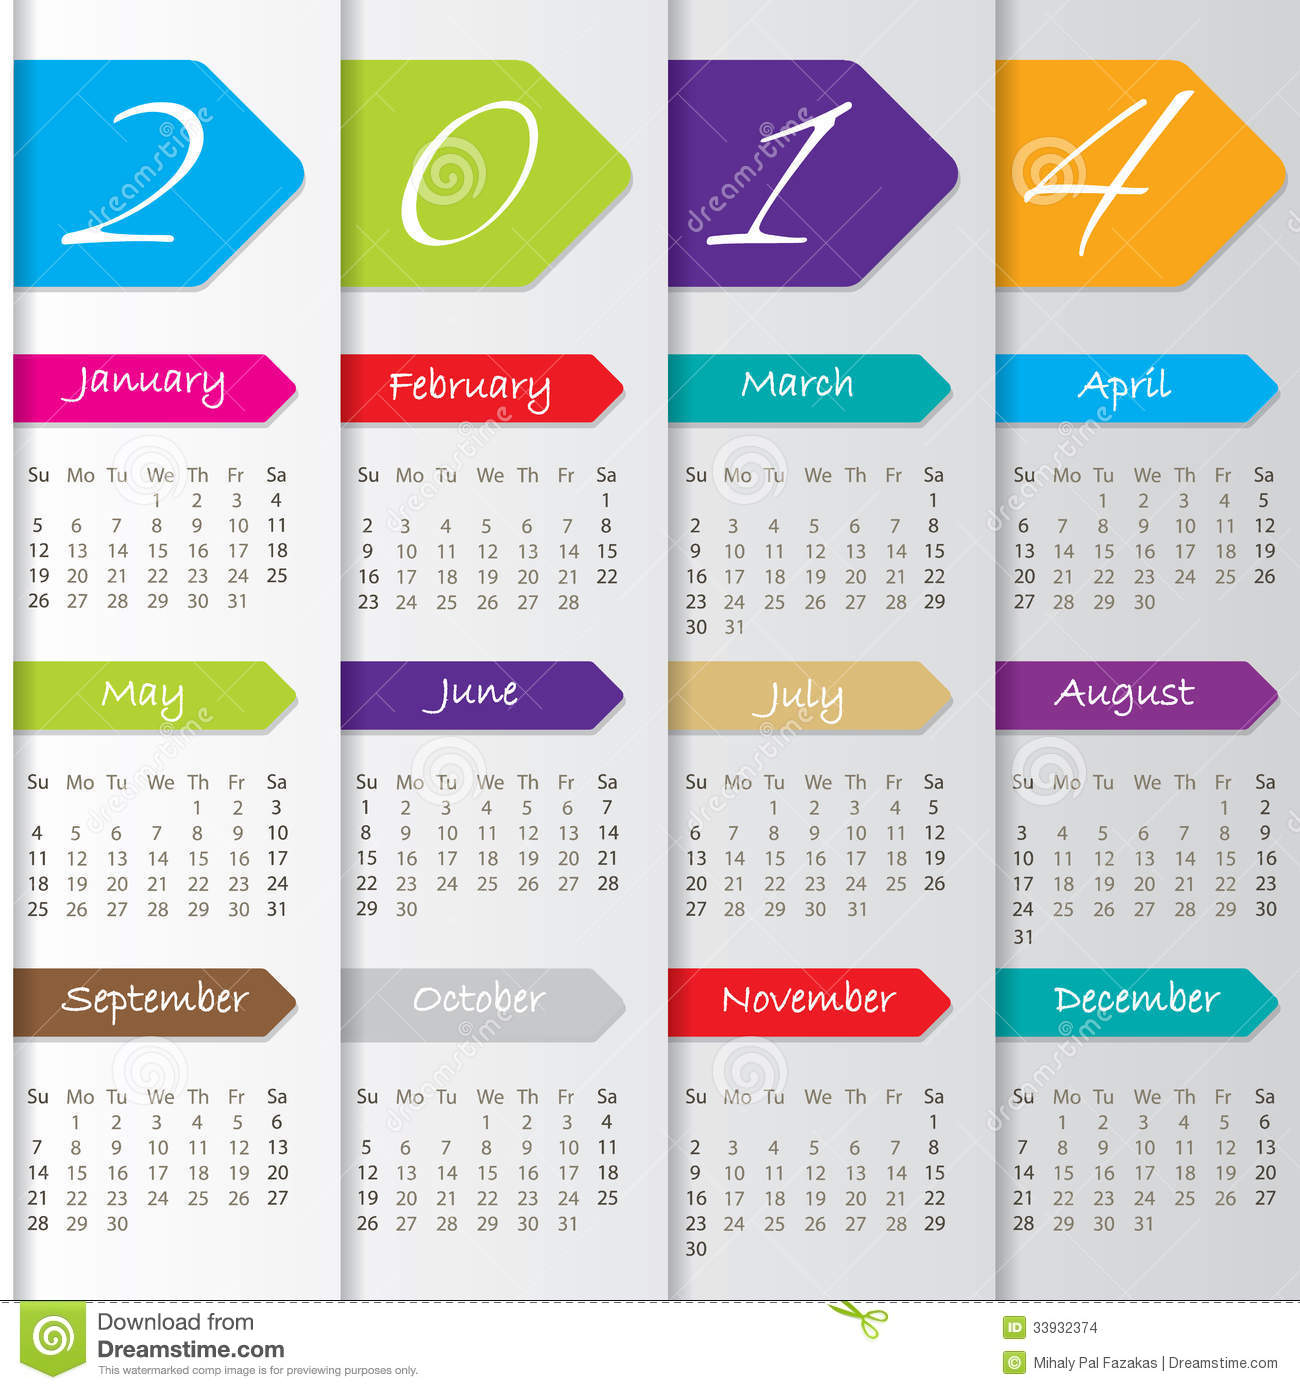 Yearly Calendar Design : Yearly calendar design templates free printable